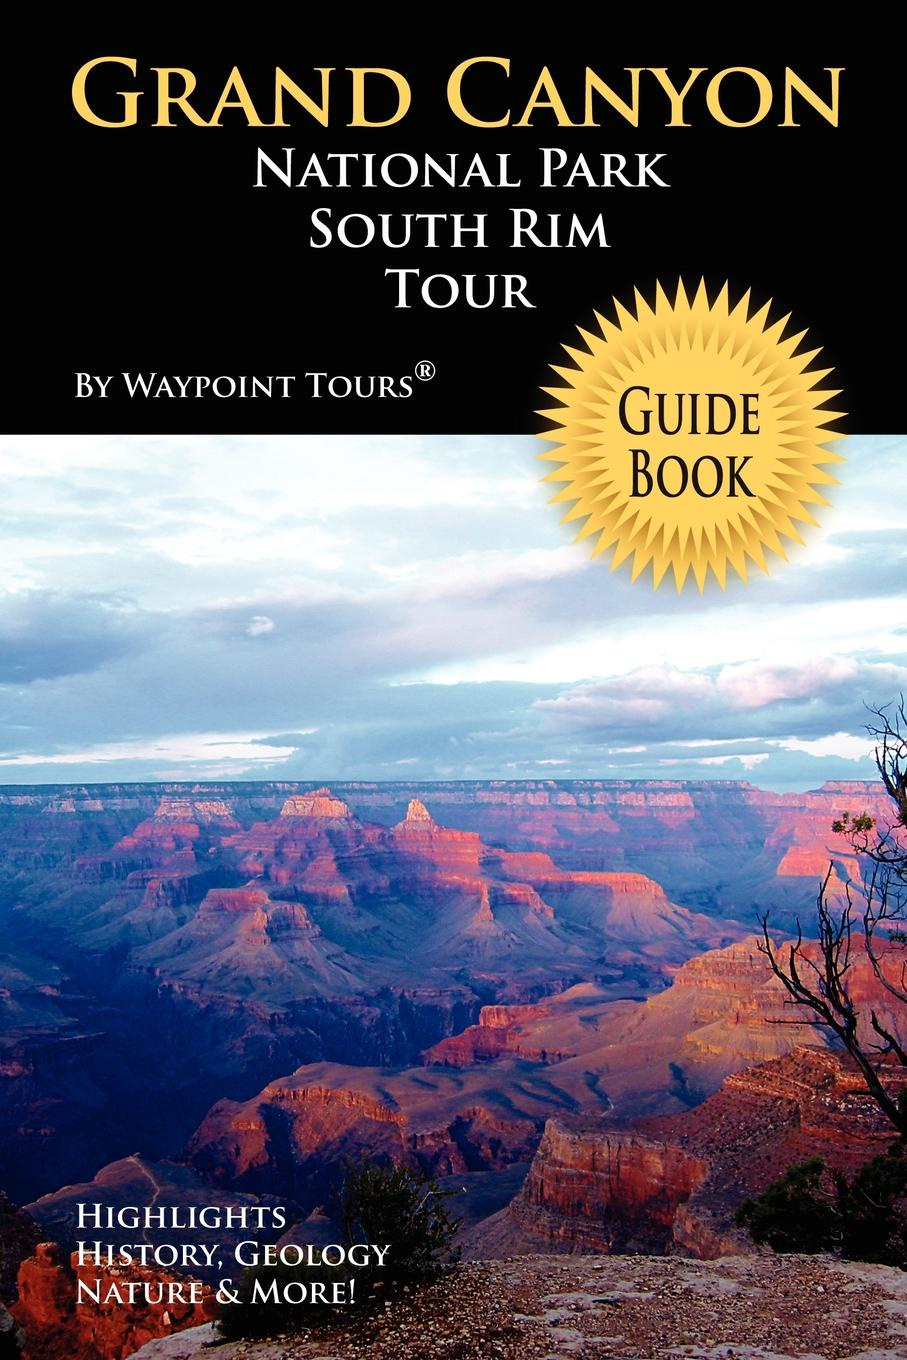 Waypoint Tours Grand Canyon National Park South Rim Tour Guide Book vichy маска пилинг пюрте термаль 75 мл